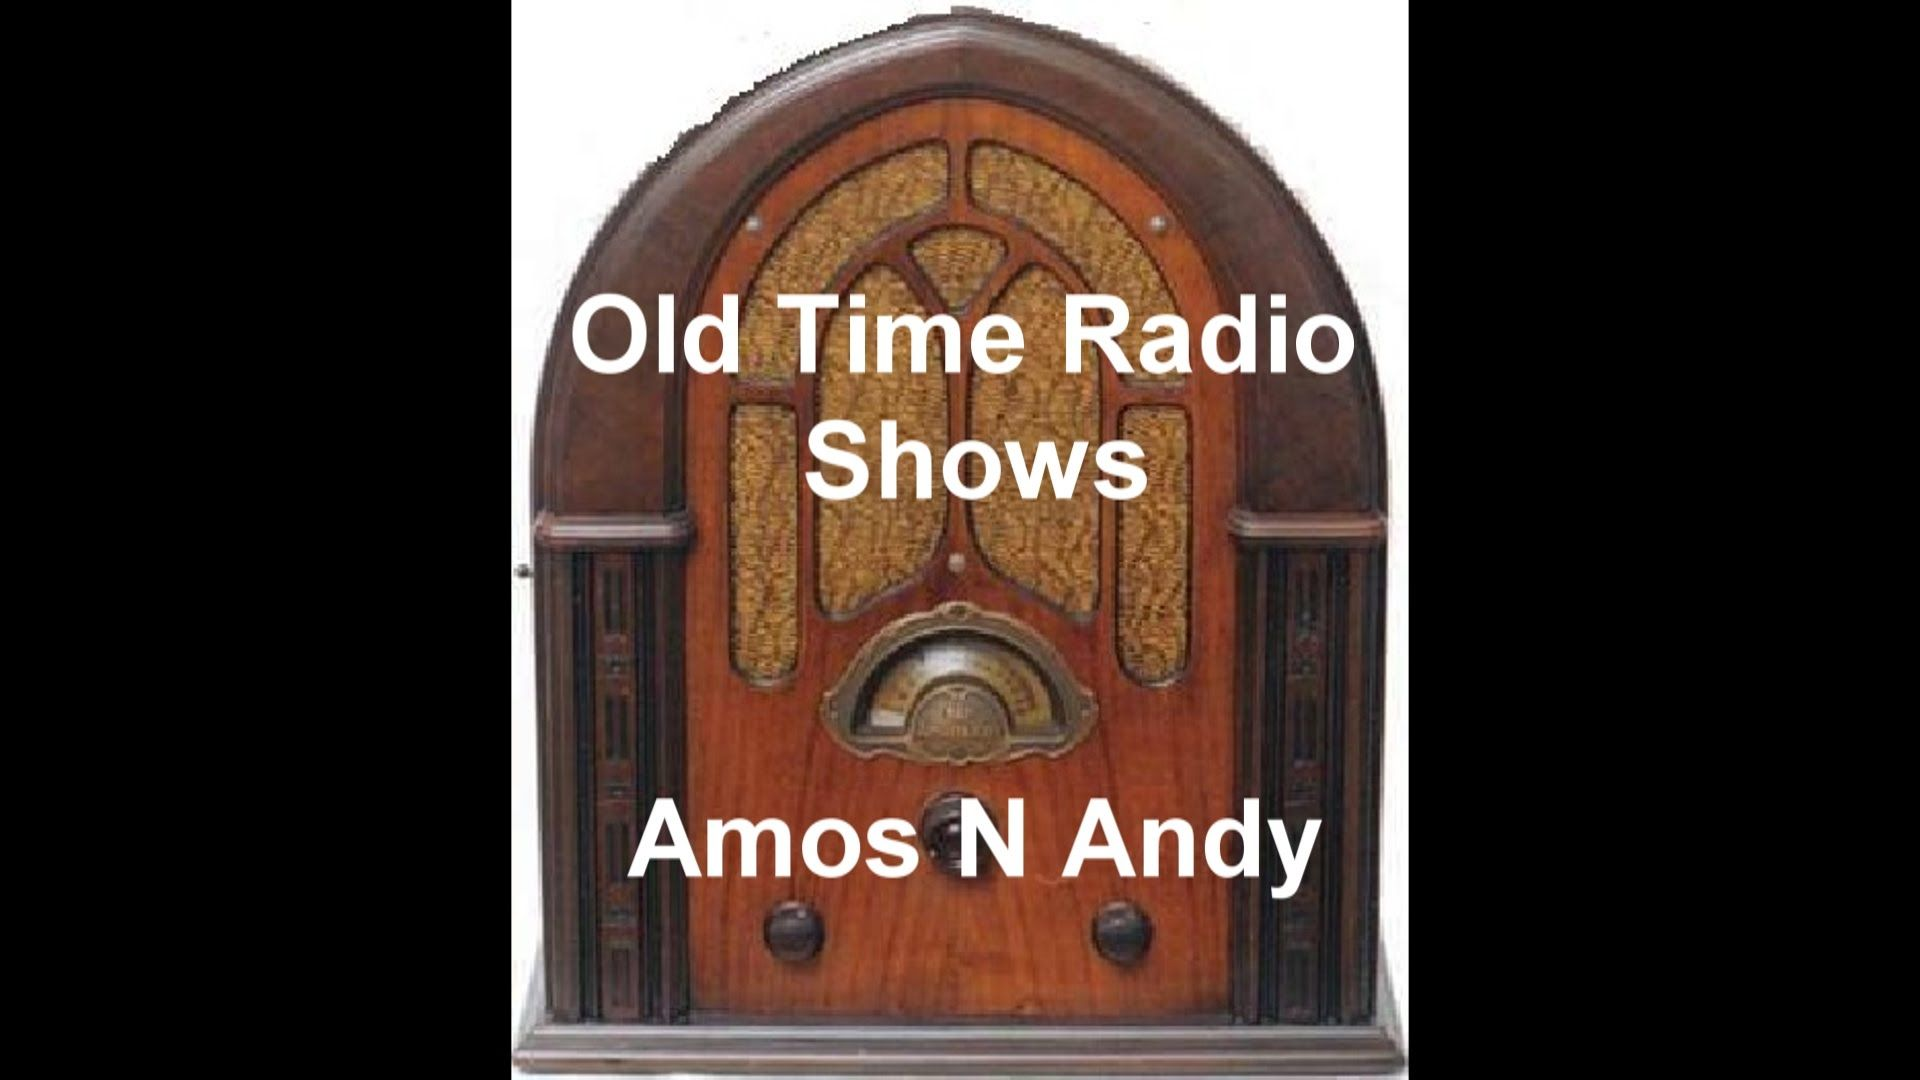 Amos N Andy Radio Show Locked Trunks Secret w/Peter Lorre Old Time Radio...